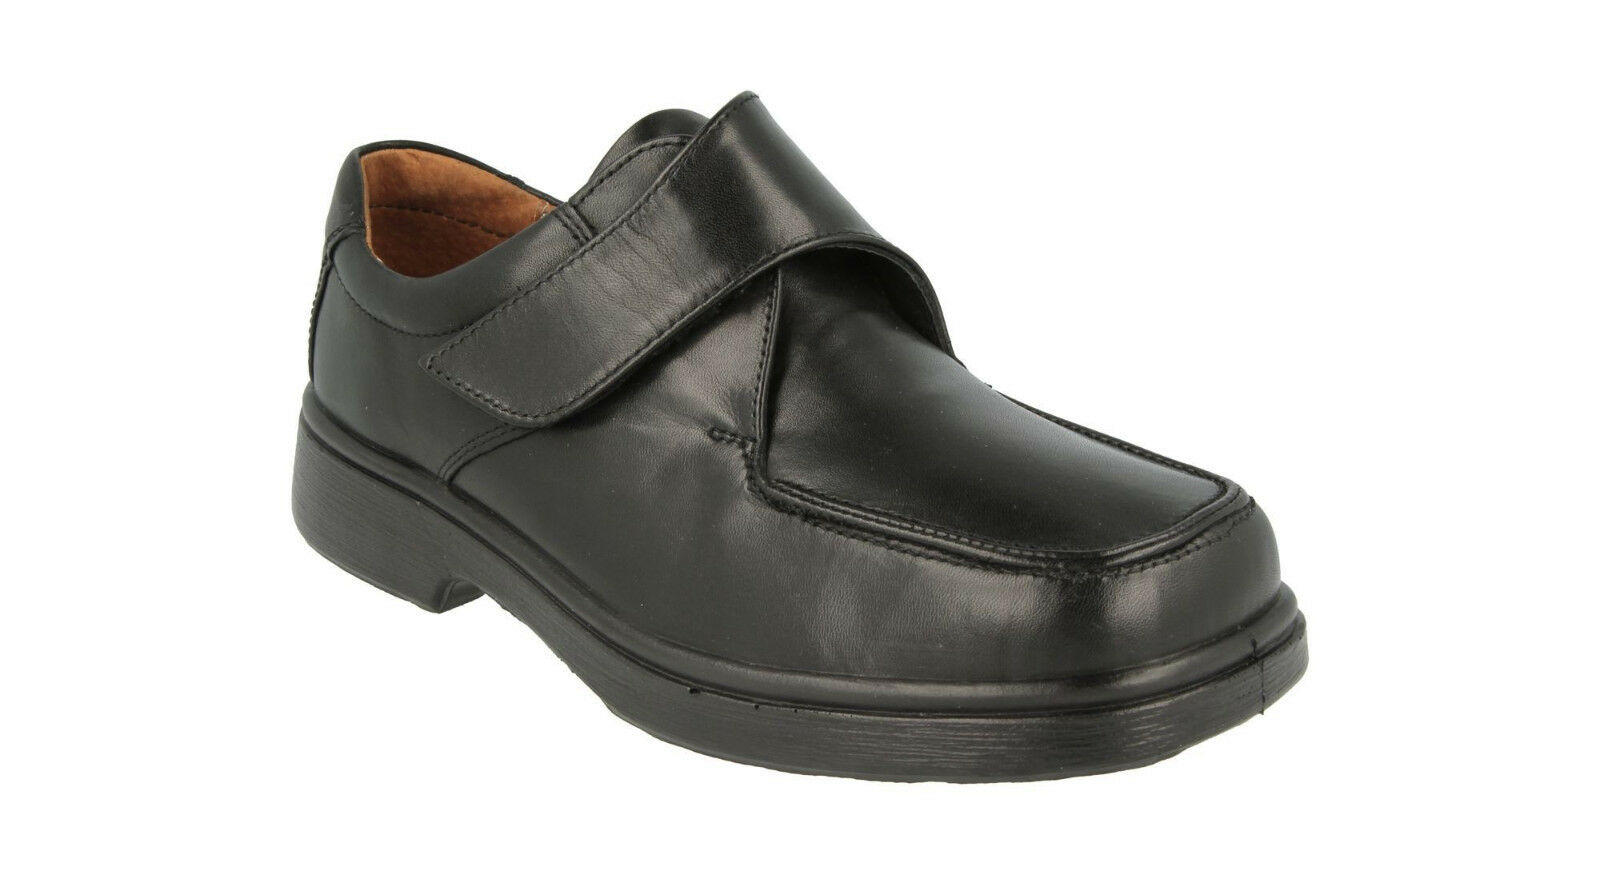 Men's DB shoes Ryan 4E Extra Wide Velcro shoes for Orthotics